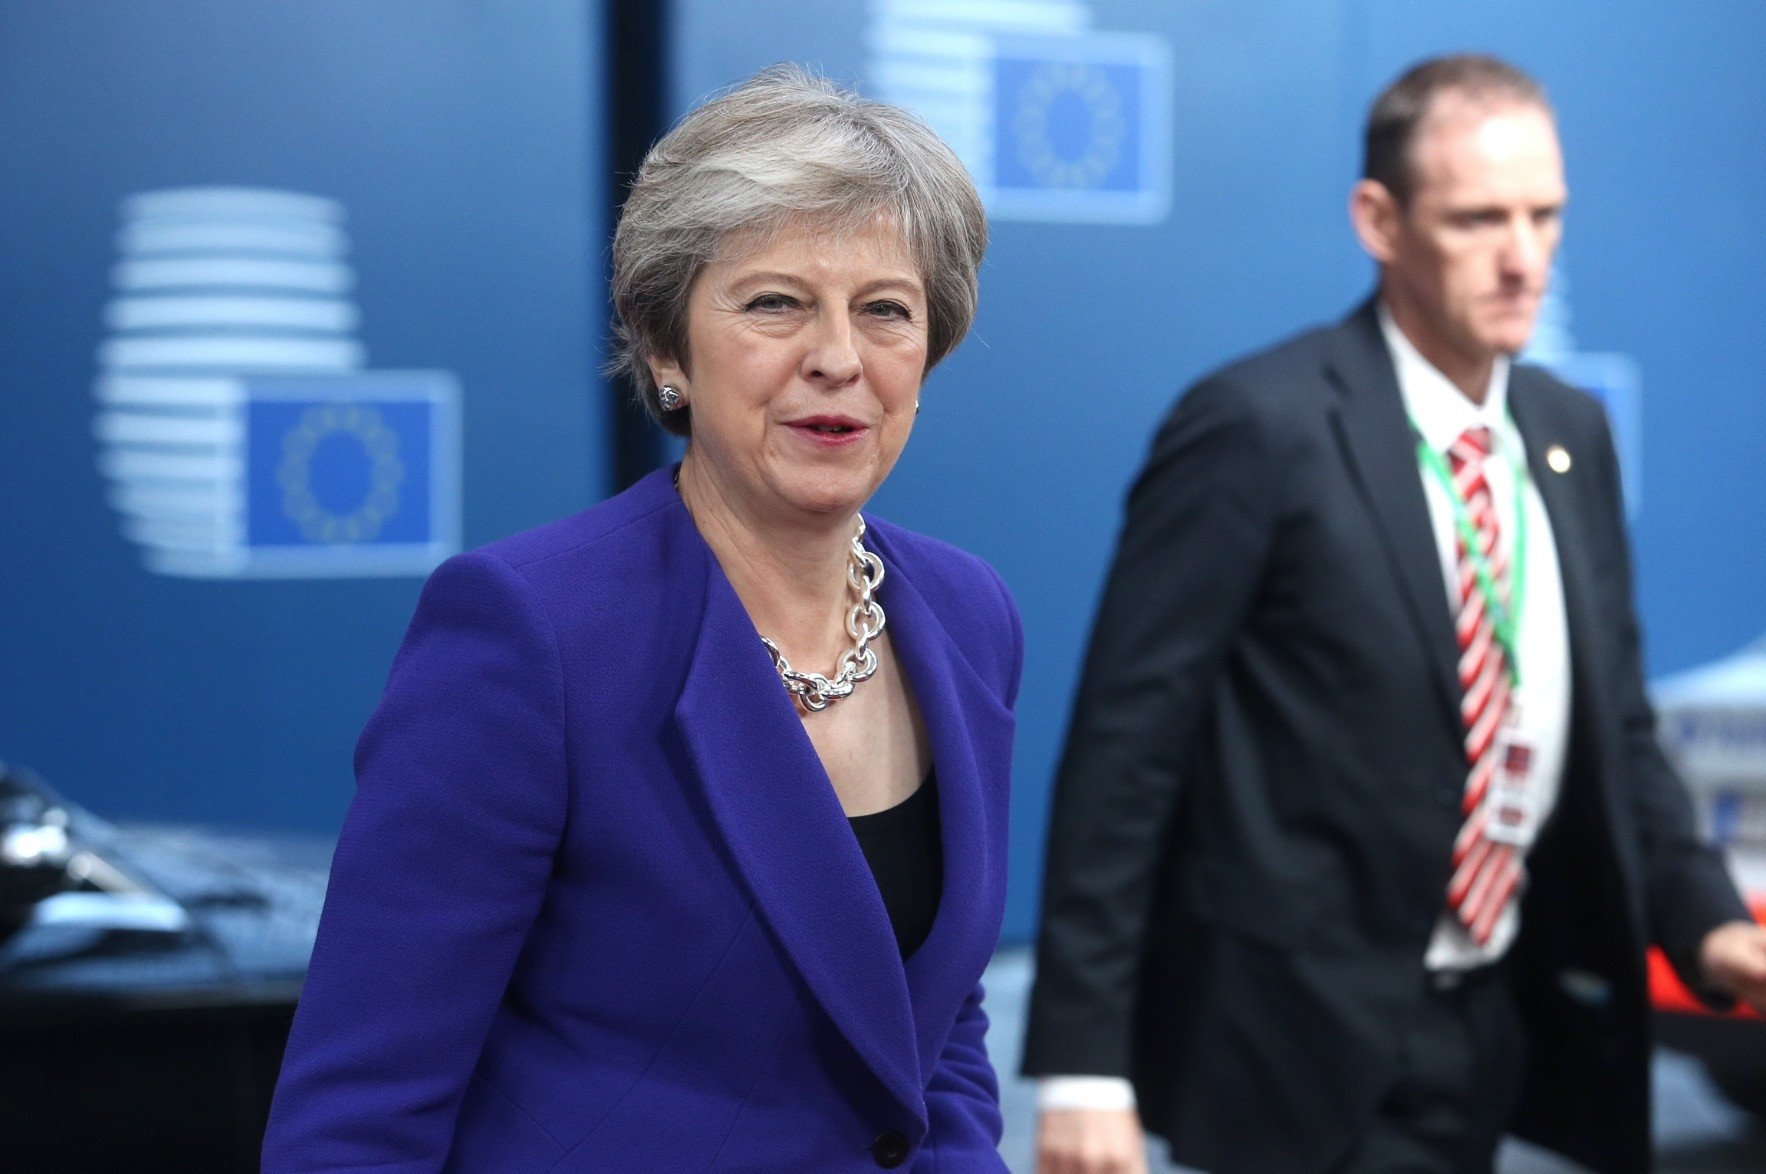 British Prime Minister Theresa May arrives at the European Council summit, Brussels, Oct. 18.